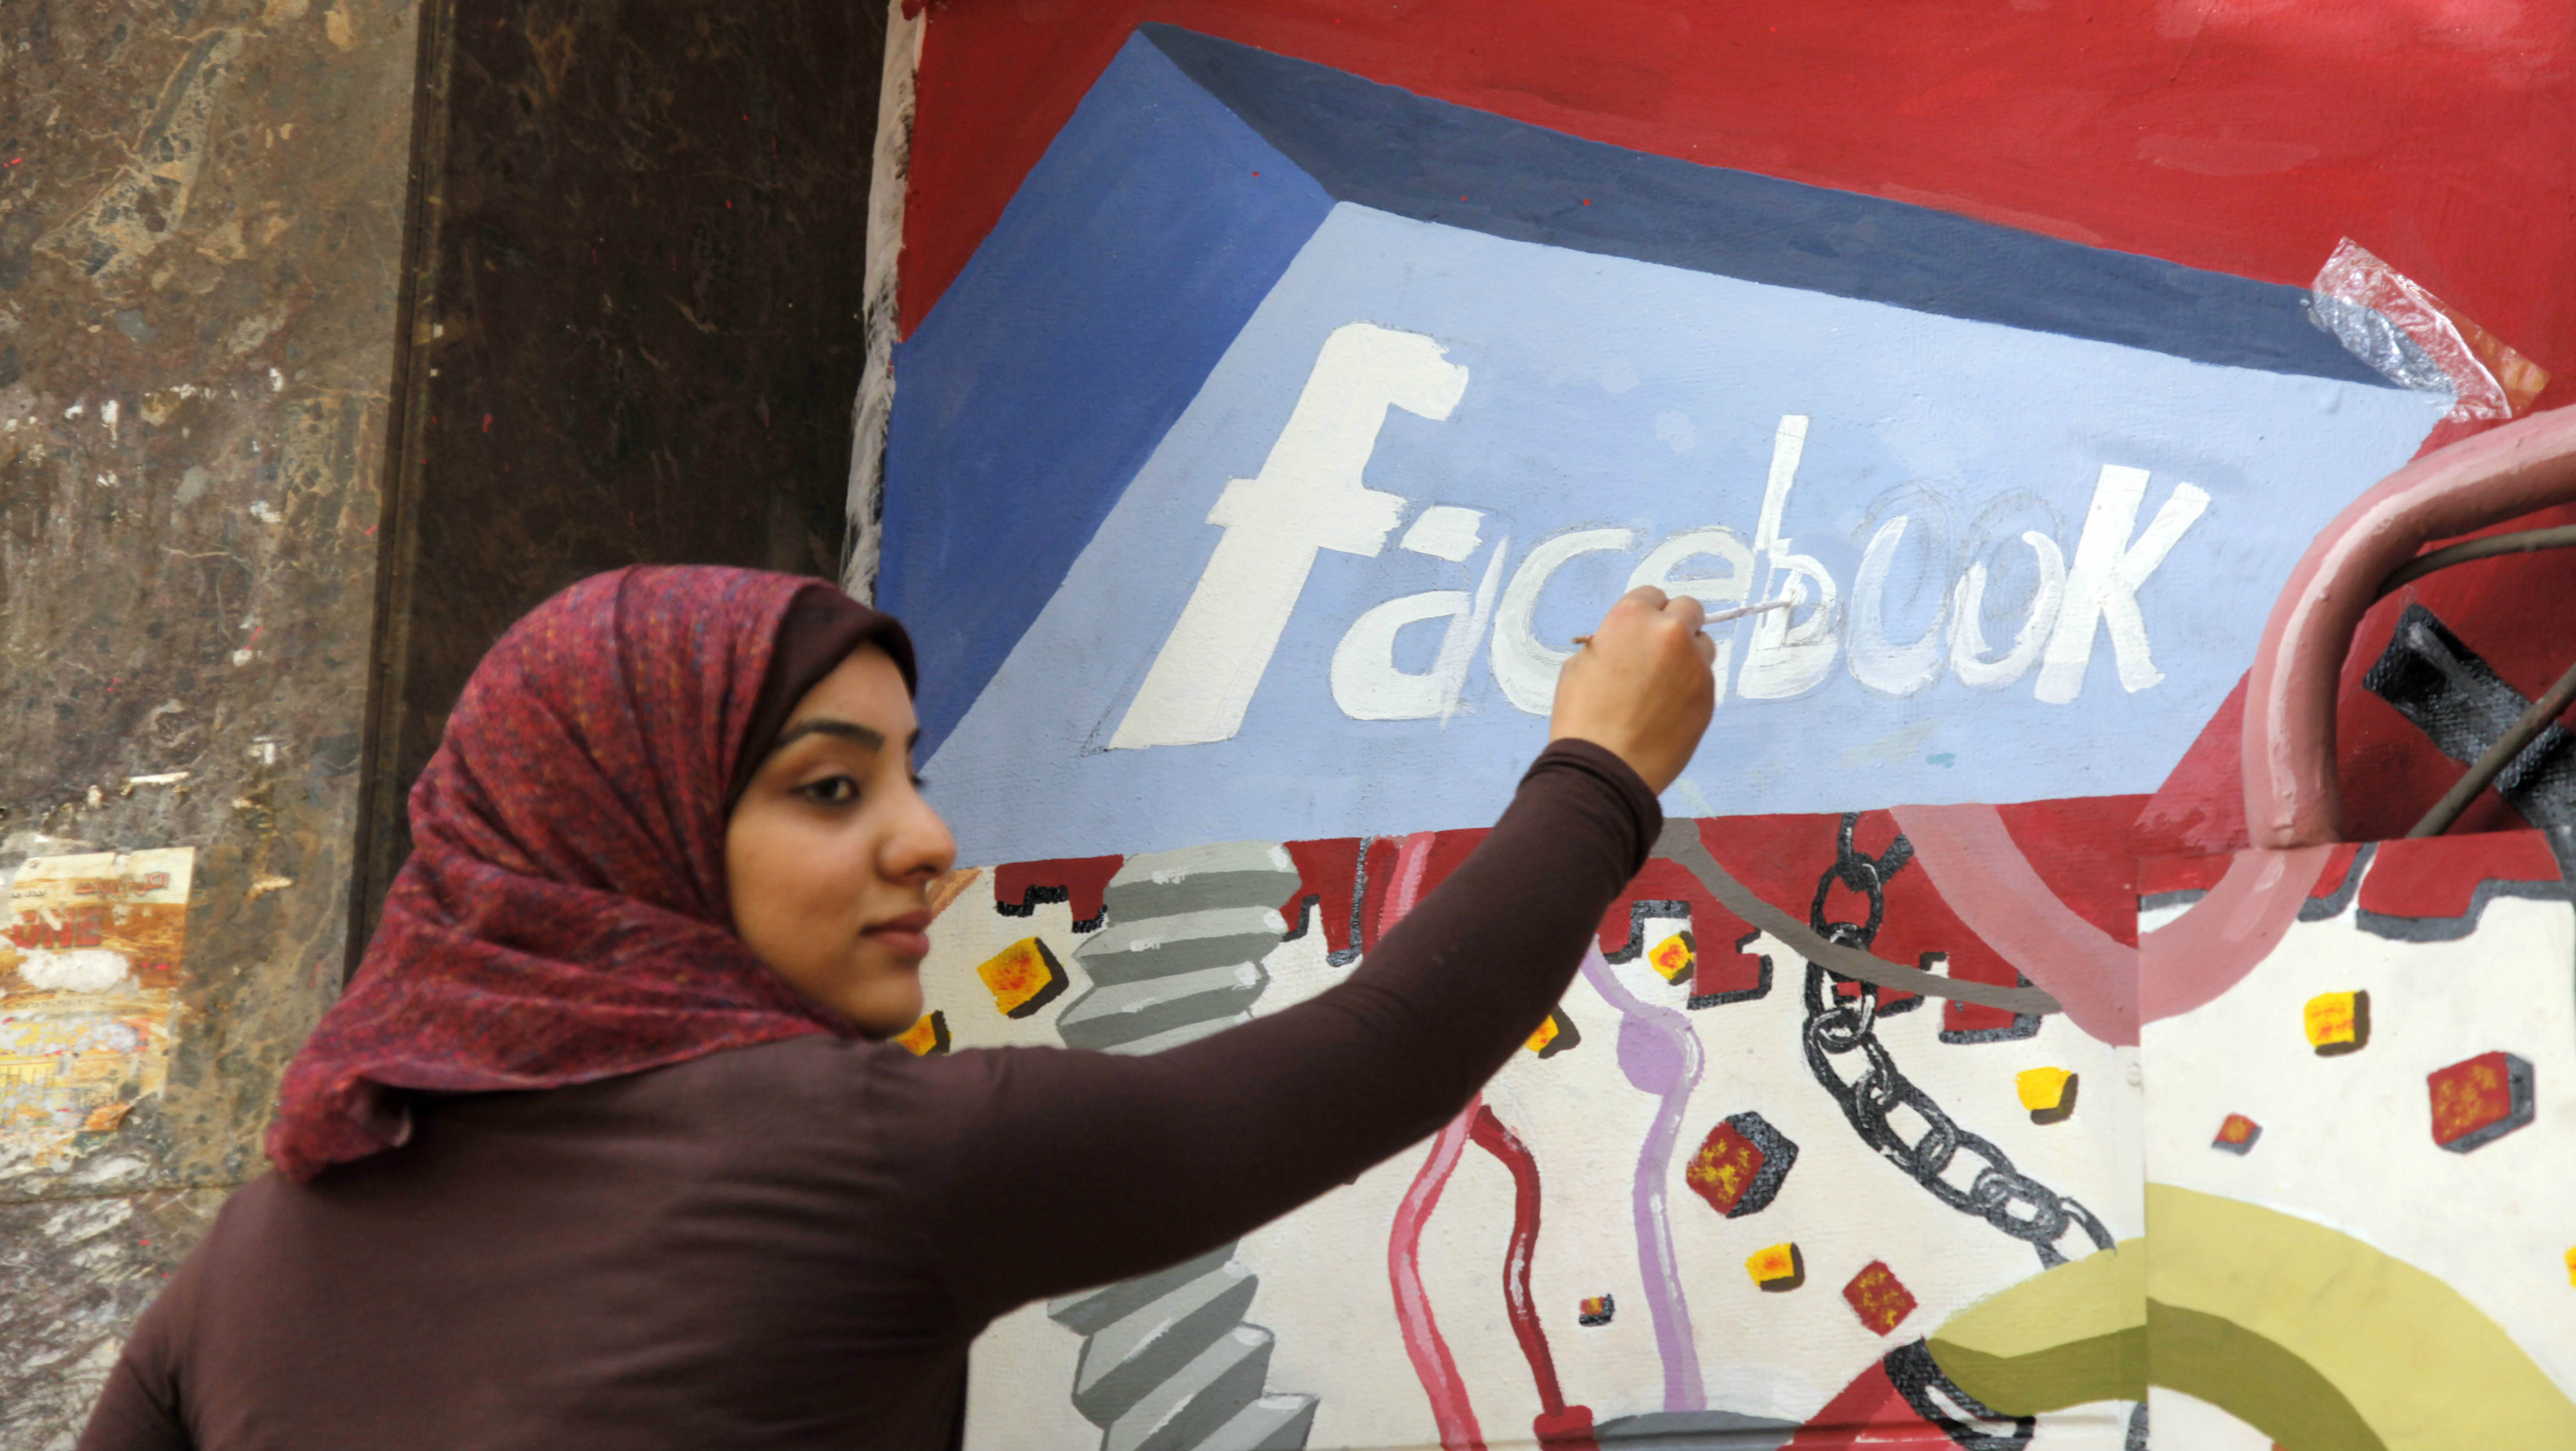 An art student from the University of Helwan paints the Facebook logo on a mural commemorating the revolution that overthrew Hosni Mubarak in the Zamalek neighborhood of Cairo, Egypt, Wednesday, March 30, 2011. They painted icons of the protests that began Jan. 25, including Facebook, which activists used to organize protests, and symbols of Muslim-Christian unity.